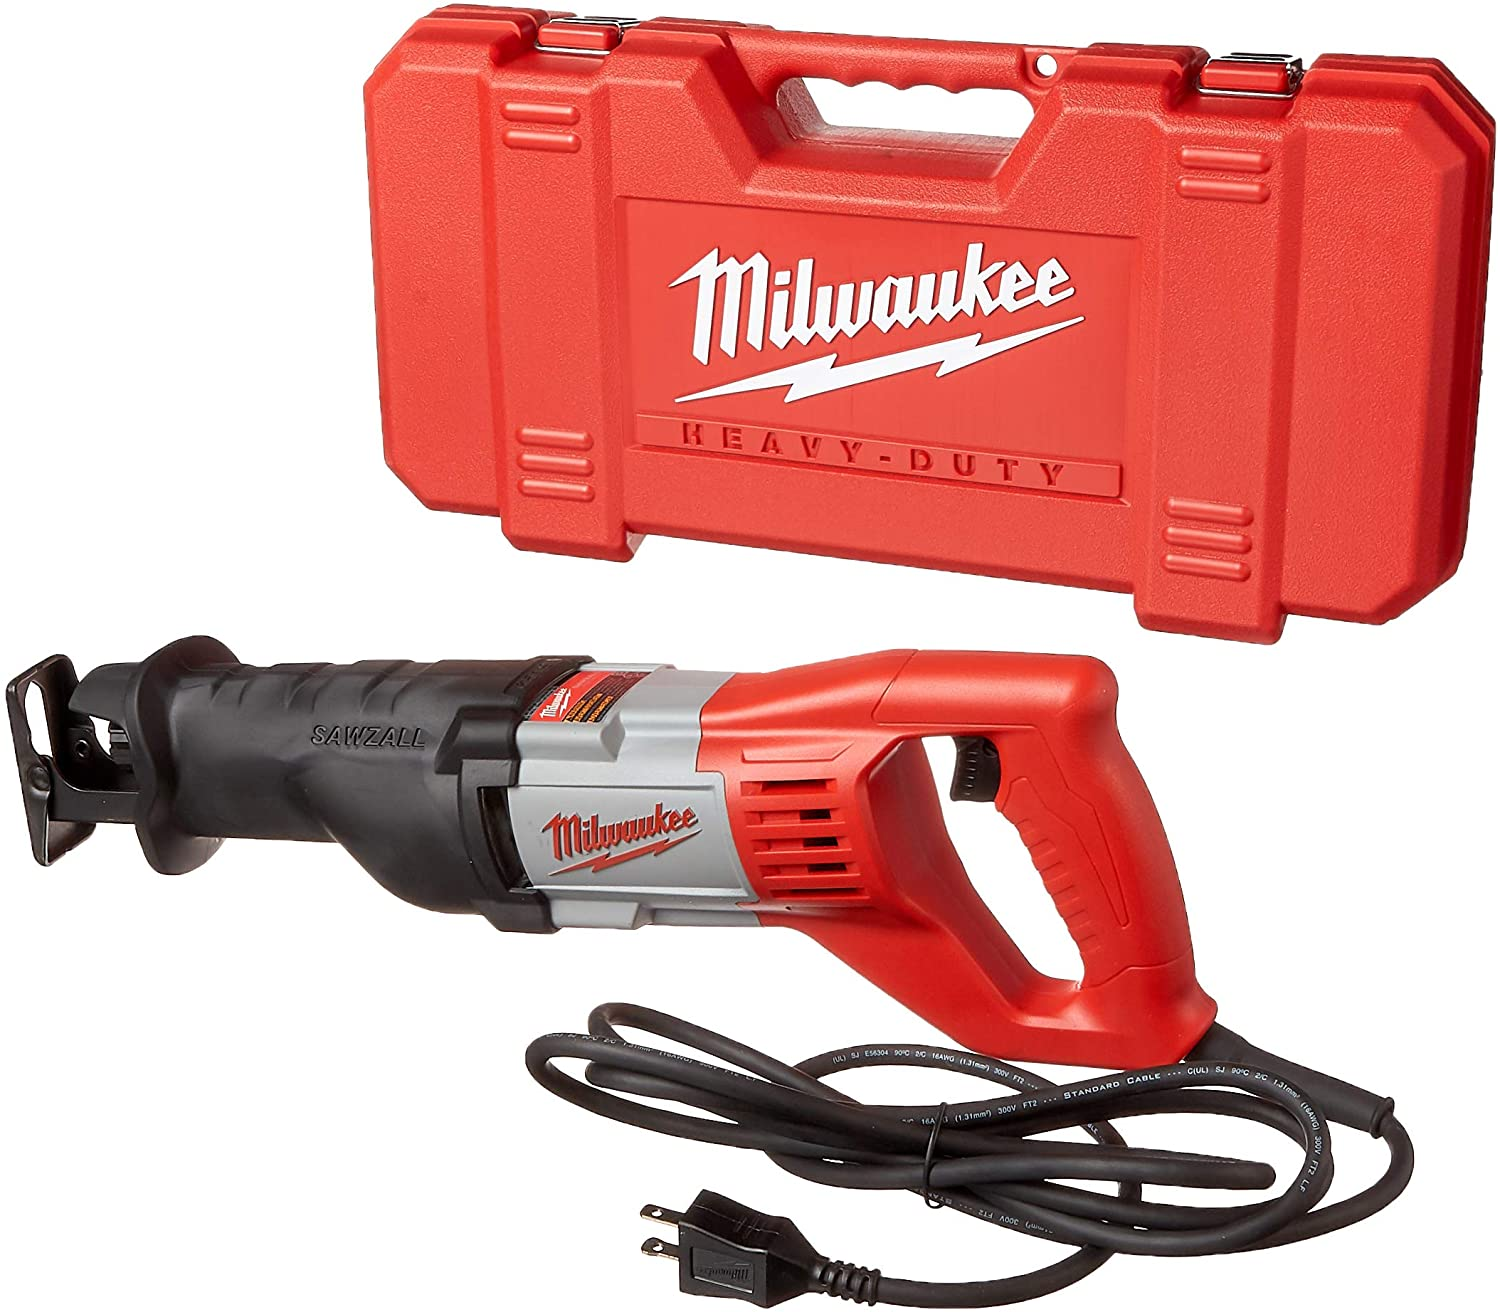 Milwaukee 6519-31 12 Amp Corded 3000 Strokes Per Minute Reciprocating Saw